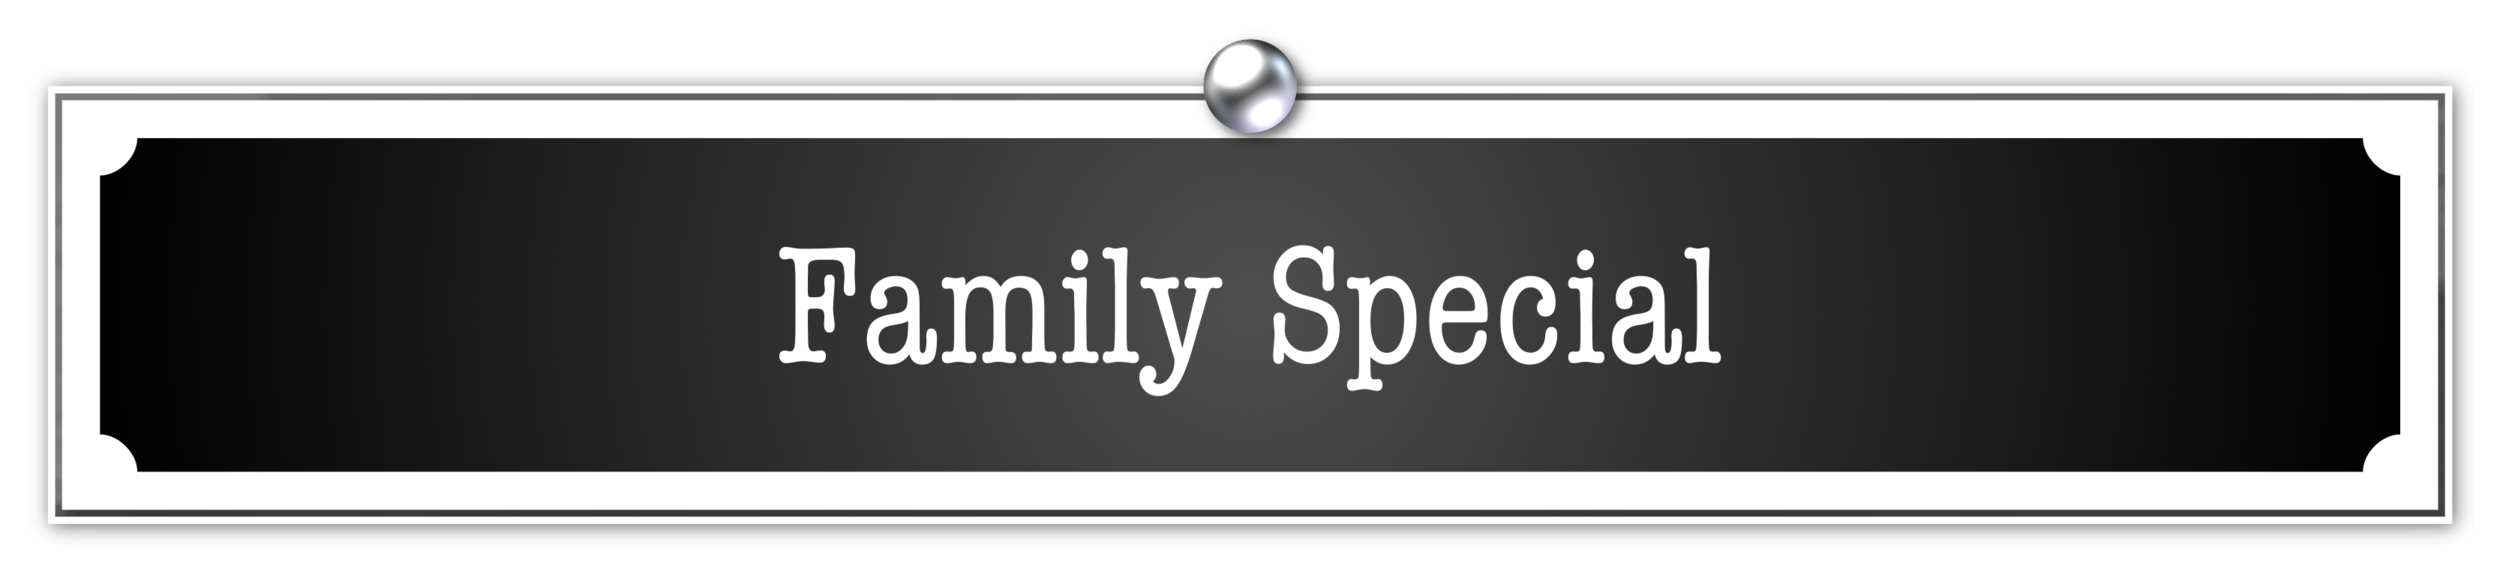 familyspecial.png